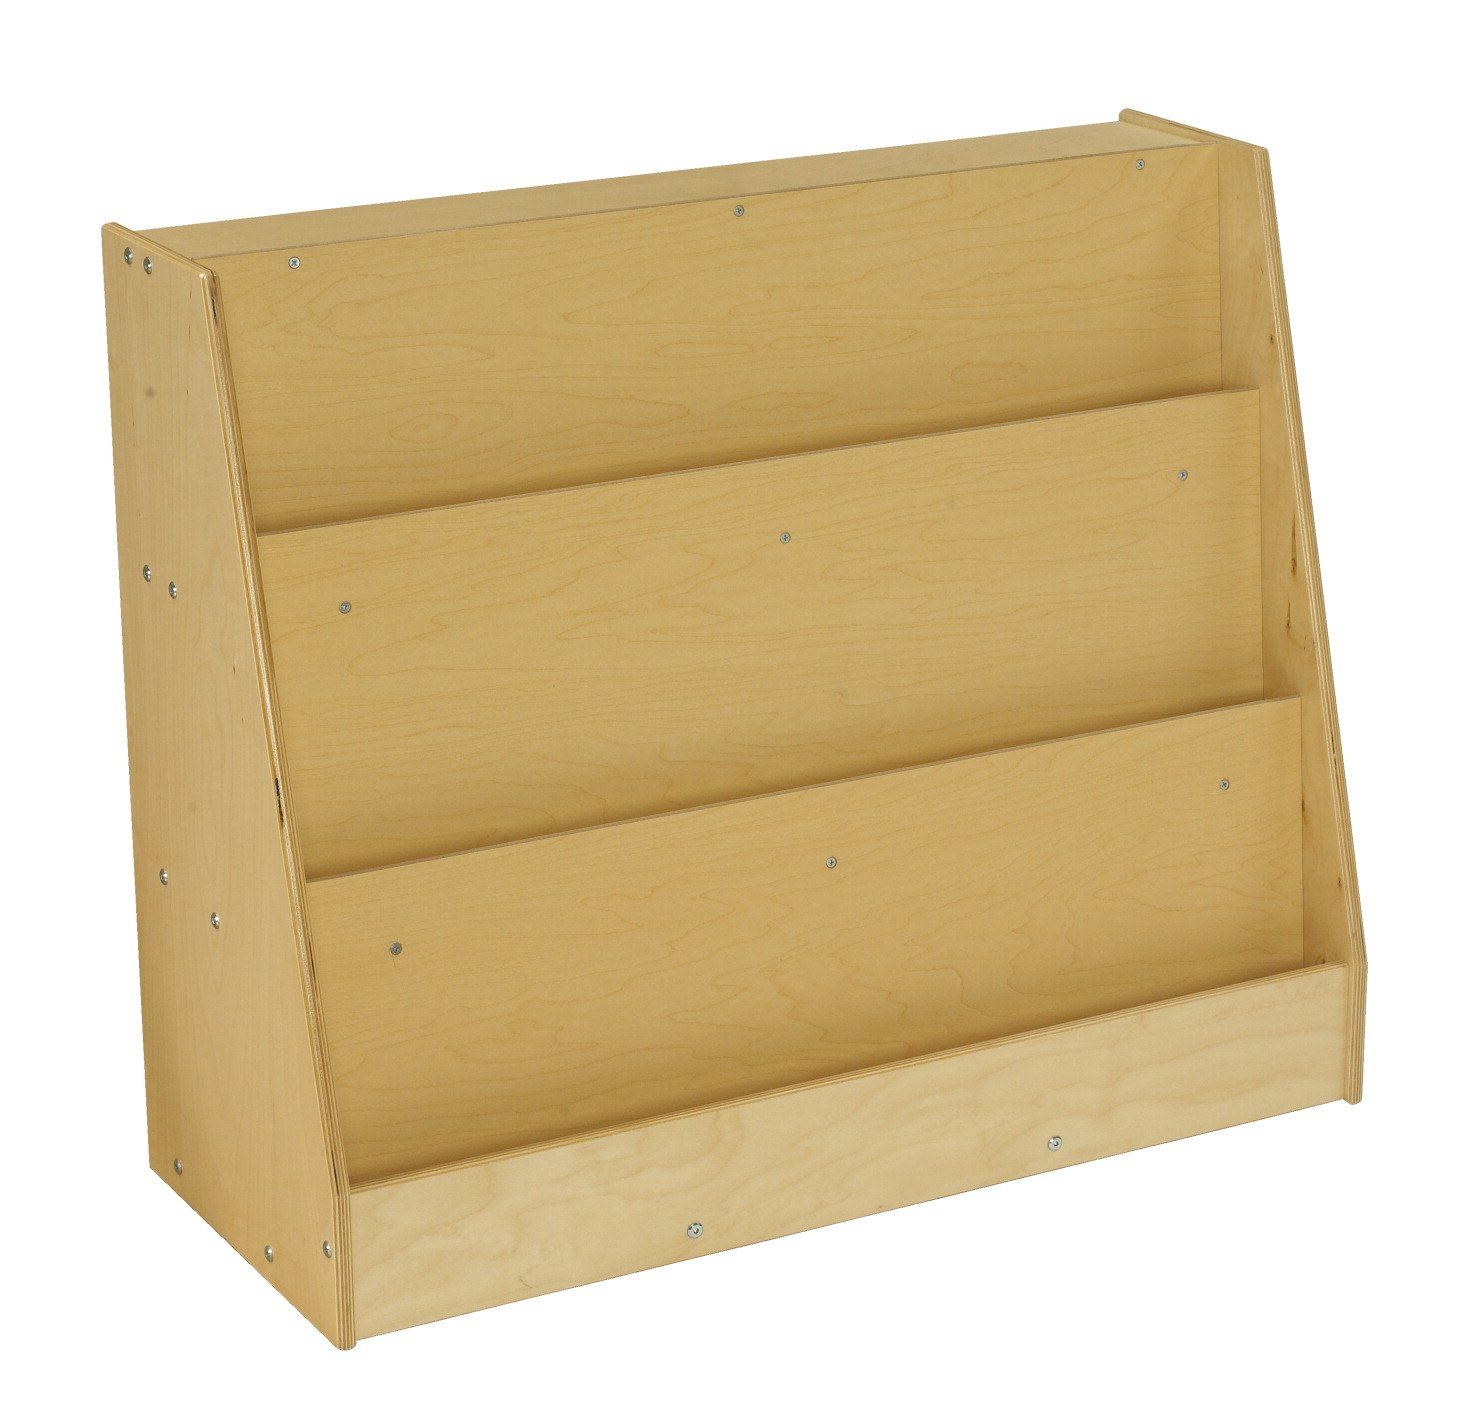 Childcraft ABC Furnishings Library Book Display, 35-3?4 W x 14-1?2 D x 30 H in